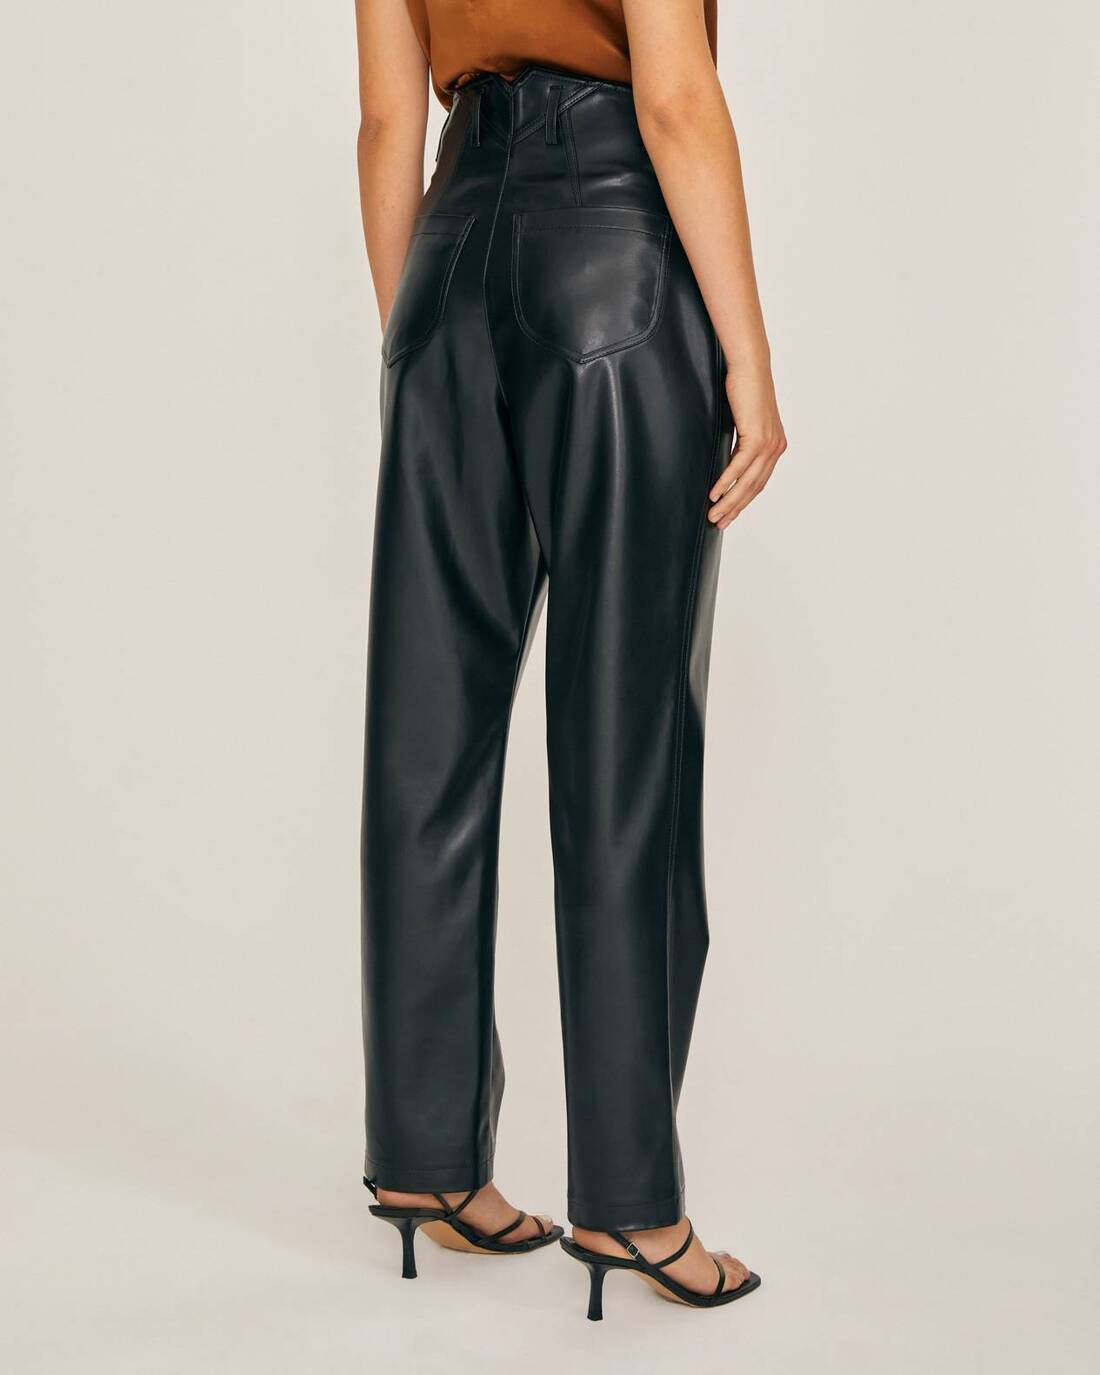 Cigarette-style pants with pockets